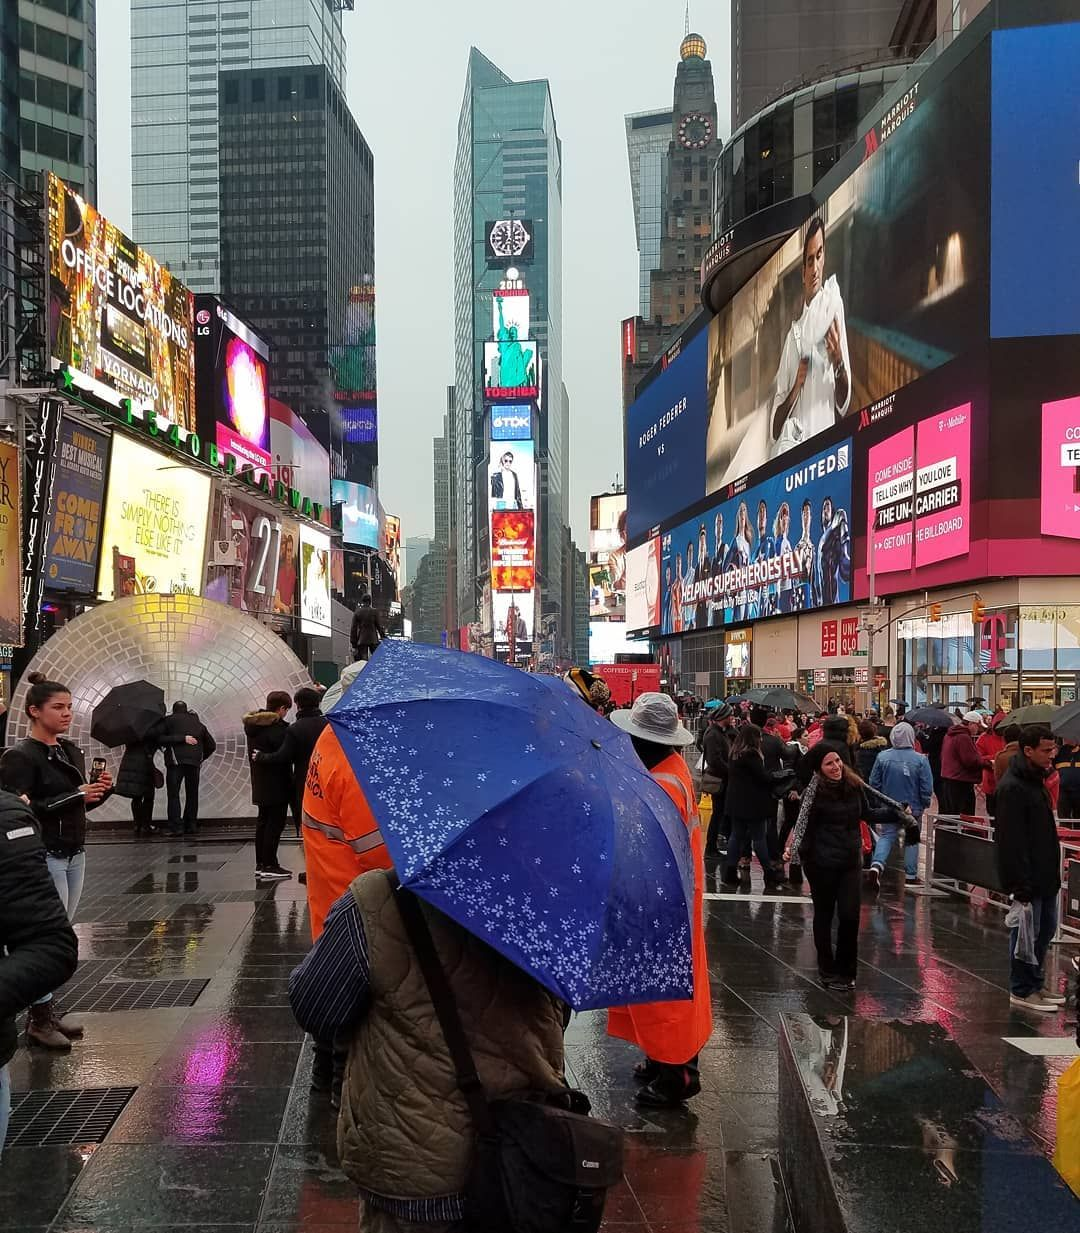 TBT - don't forget your umbrella  #photoart #photography #mood #canon #nyc #timessquare #rain #february #throwbackthursday #citylife